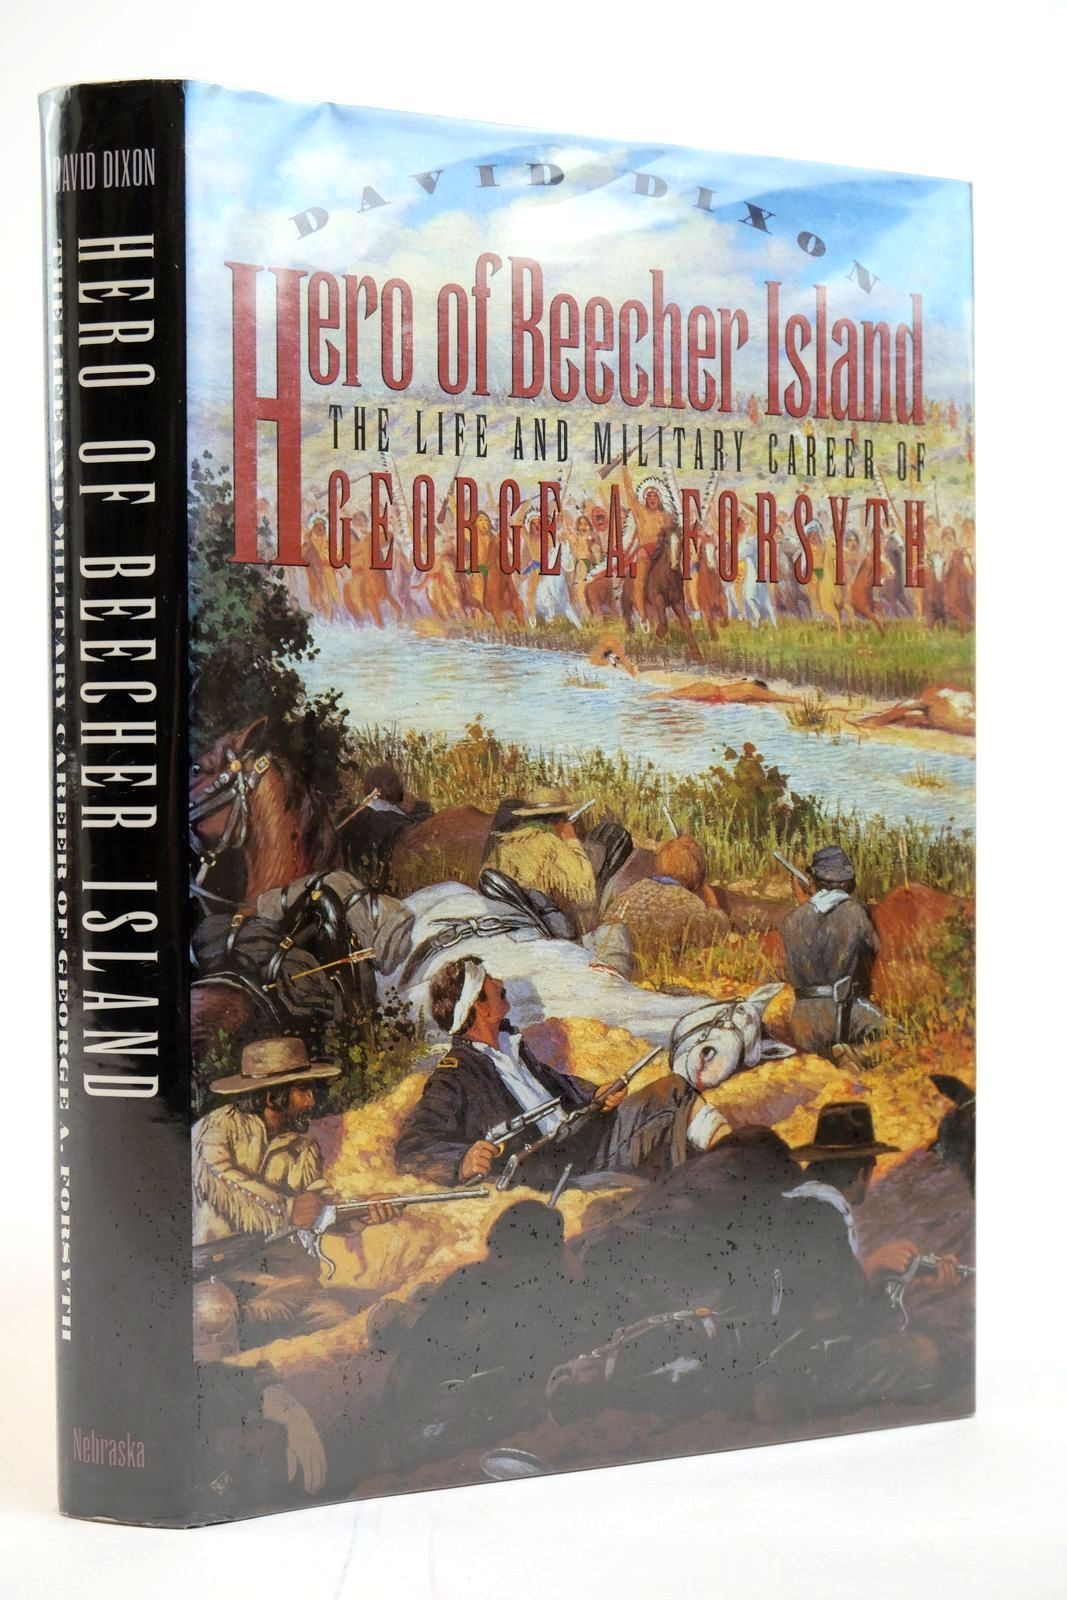 Photo of HERO OF BEECHER ISLAND: THE LIFE AND MILITARY CAREER OF GEORGE A. FORSYTH written by Dixon, David published by University of Nebraska (STOCK CODE: 2135255)  for sale by Stella & Rose's Books